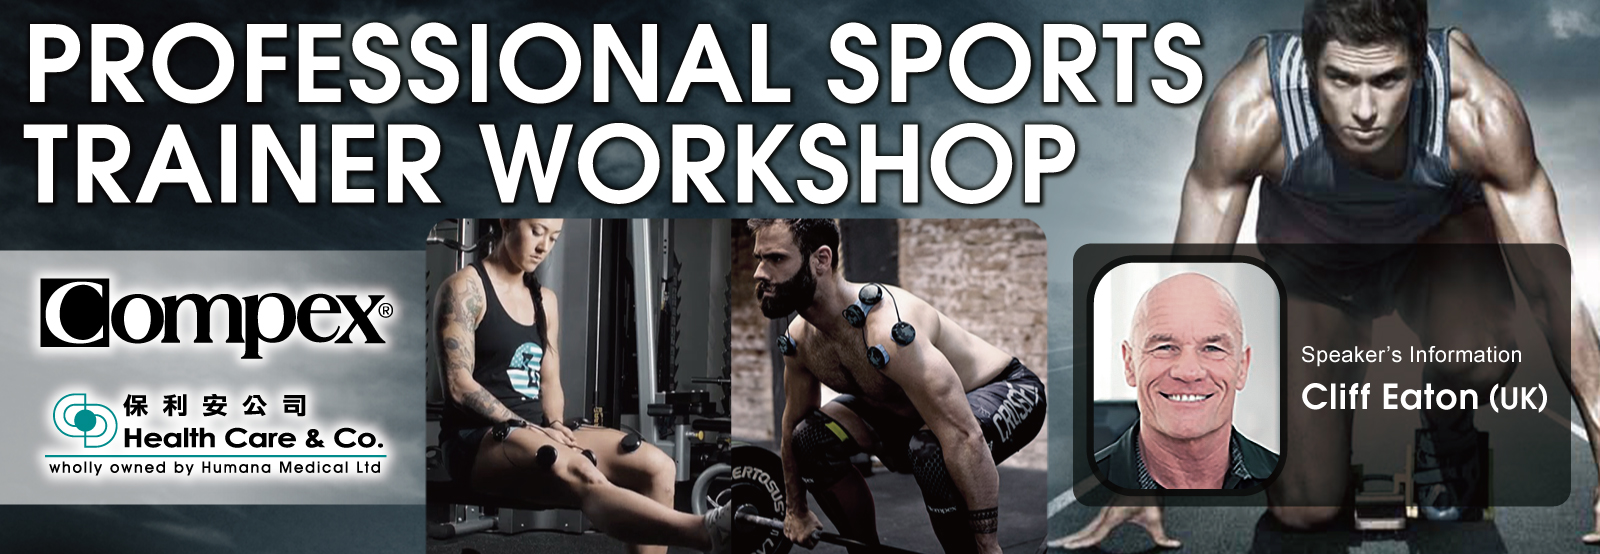 Professional Sports Trainer Workshop